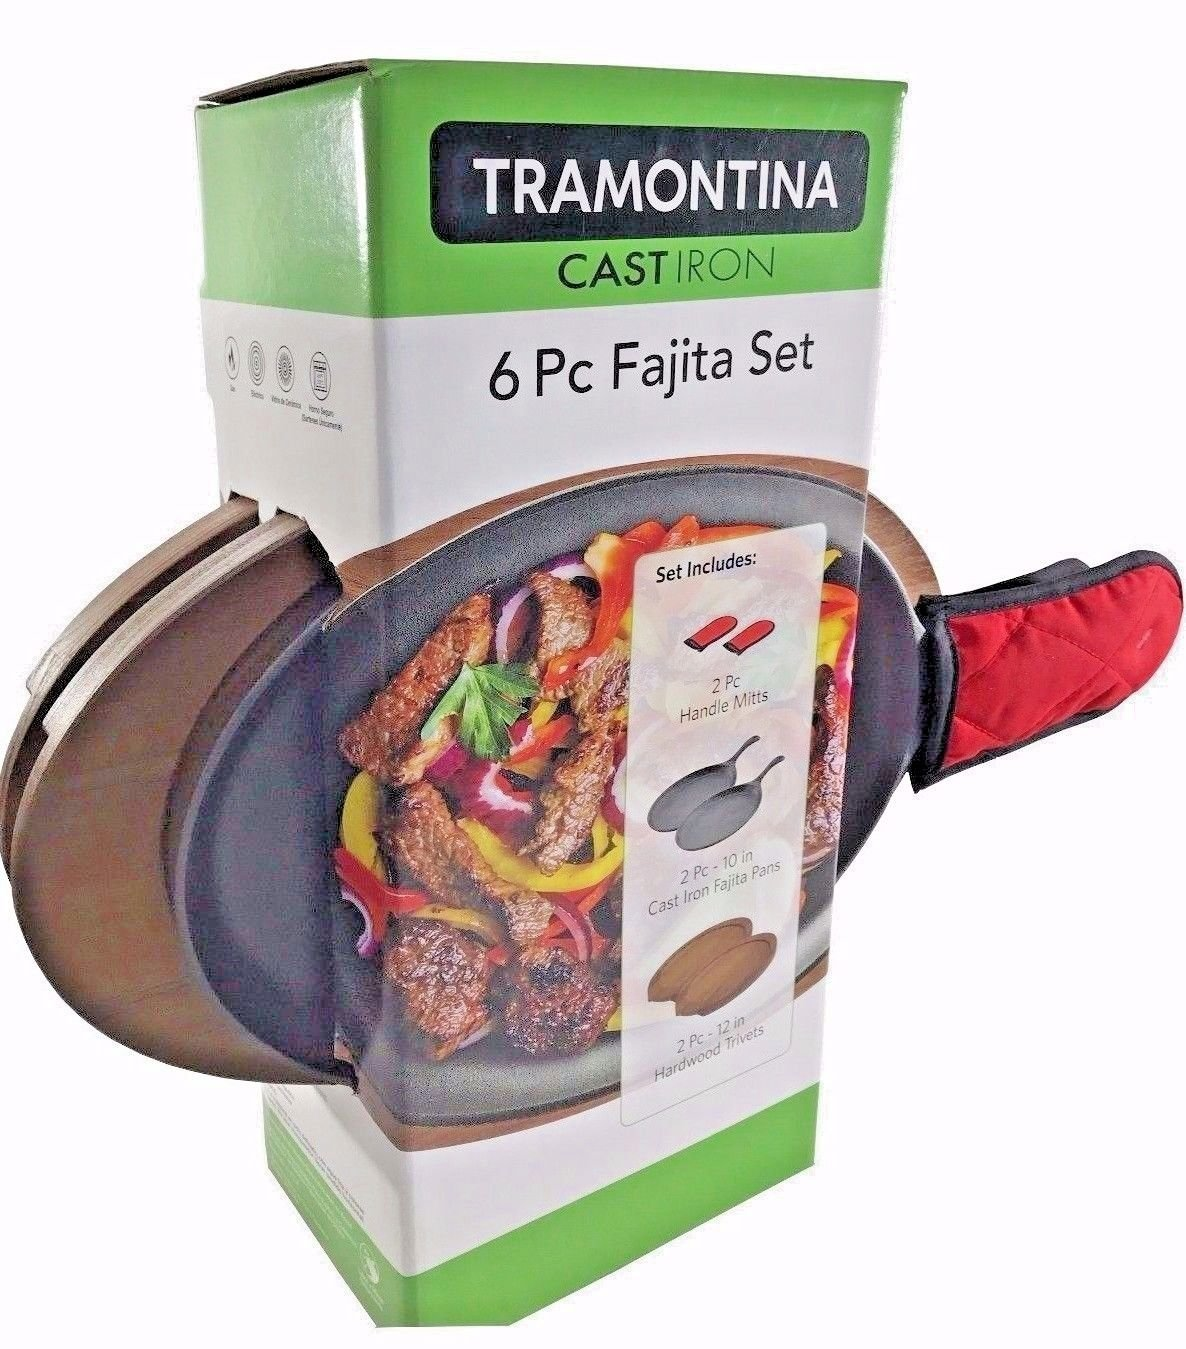 Tramontina Cast Iron 6 Pc Fajita Set - Two Pans, Mitts, Wood Trivets Each